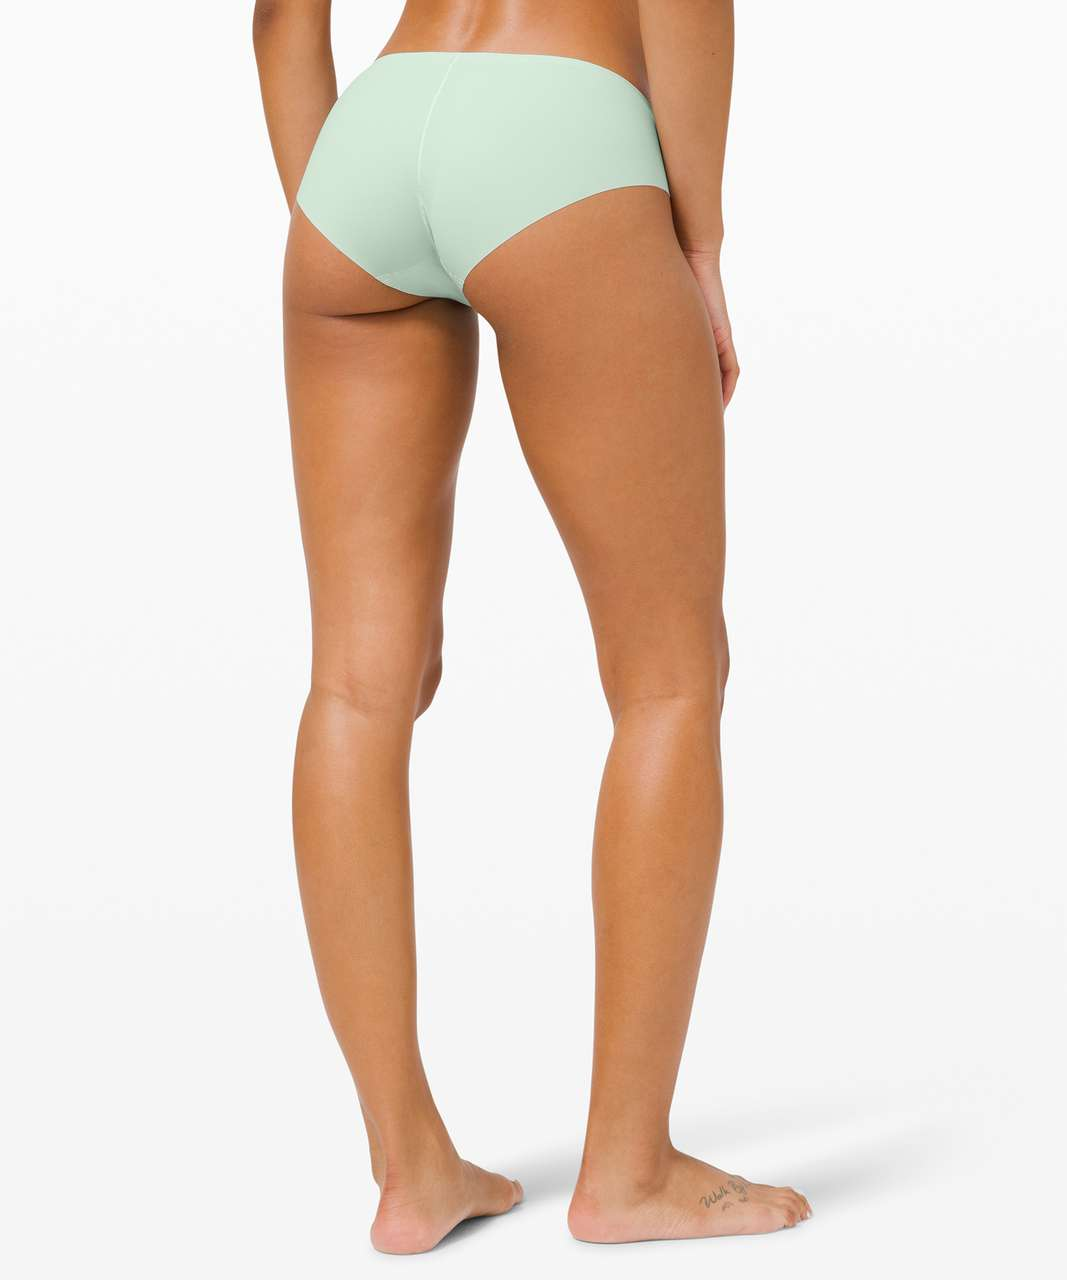 Lululemon Smooth Seamless Hipster 3 Pack - Collage Camo Mini Serene Blue Multi Rotated 90 / Delicate Mint / Pink Pastel